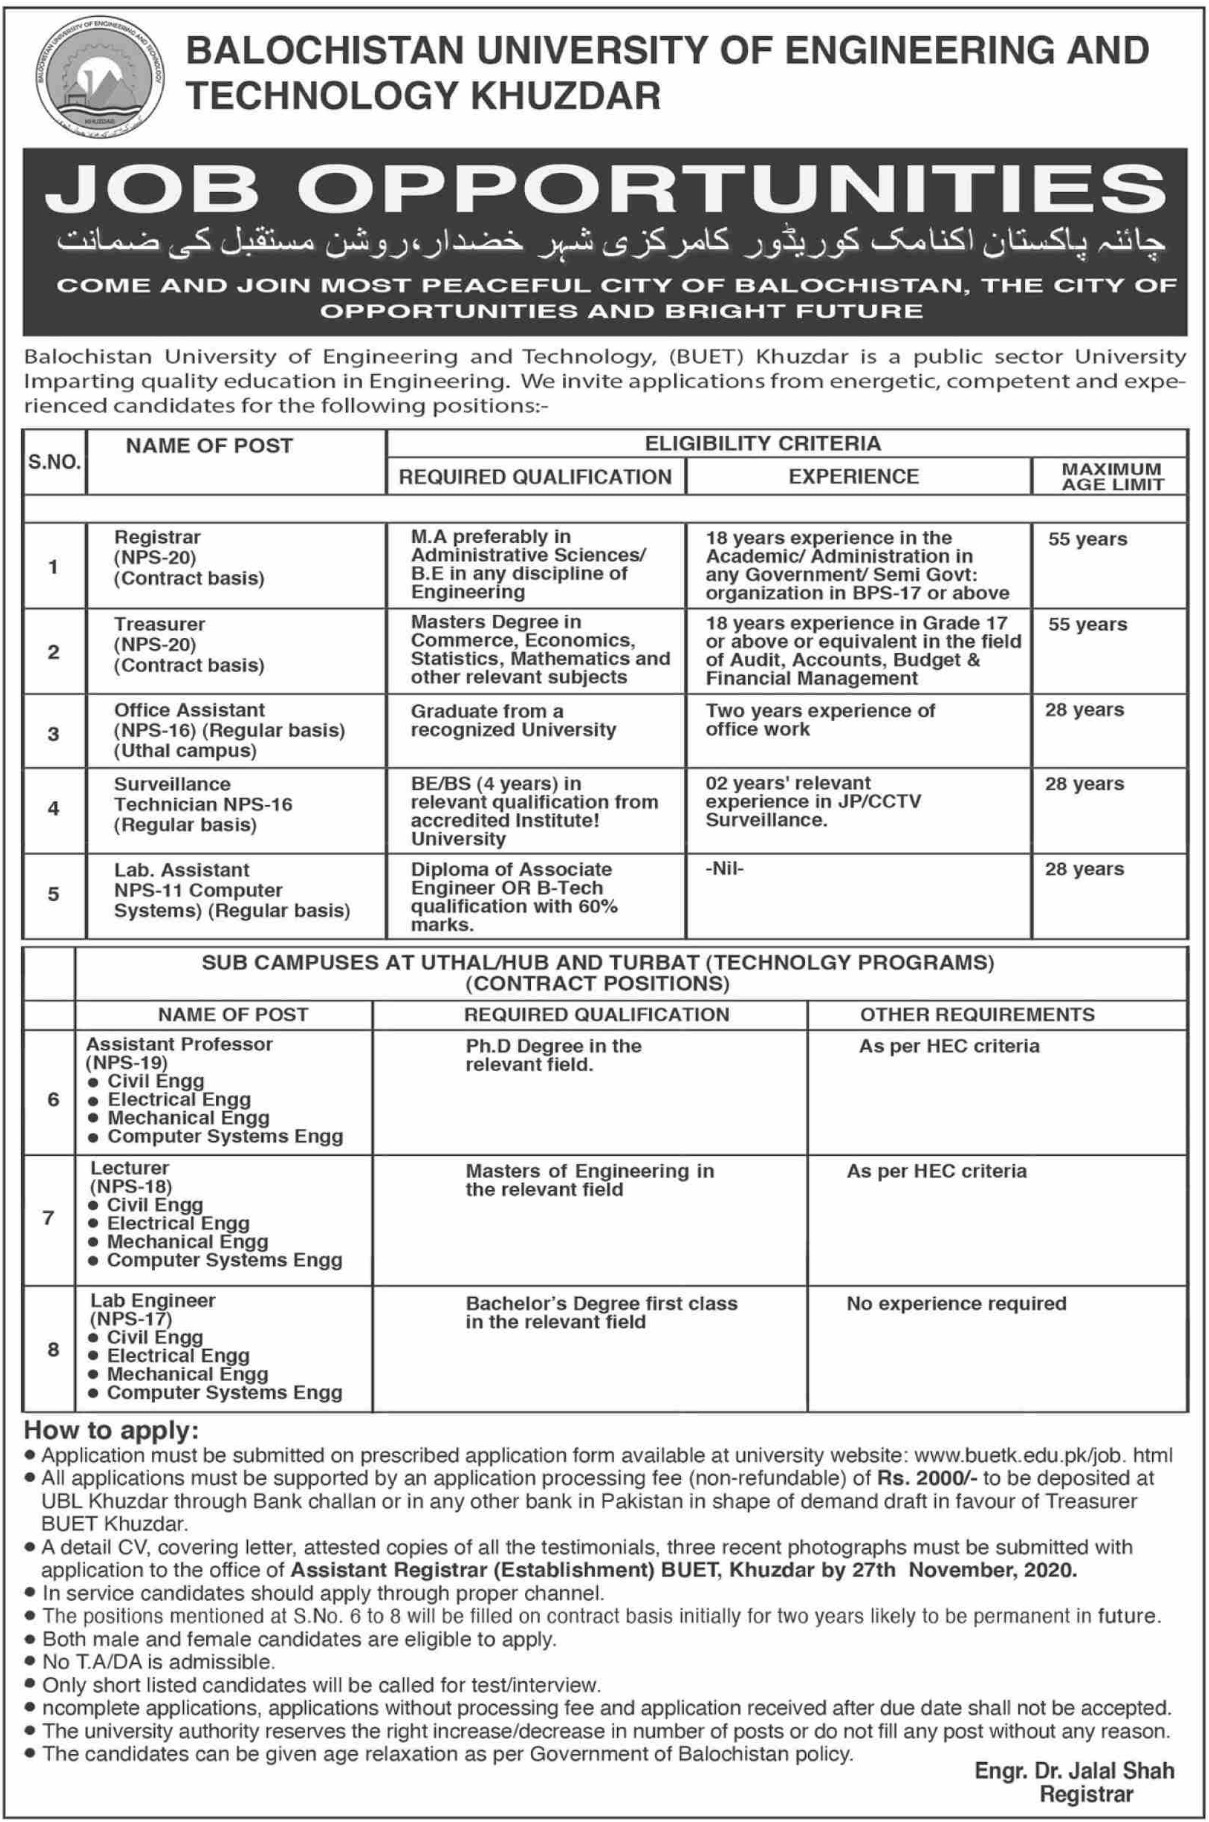 Balochistan University of Engineering & Technology Khuzdar Jobs November 2020